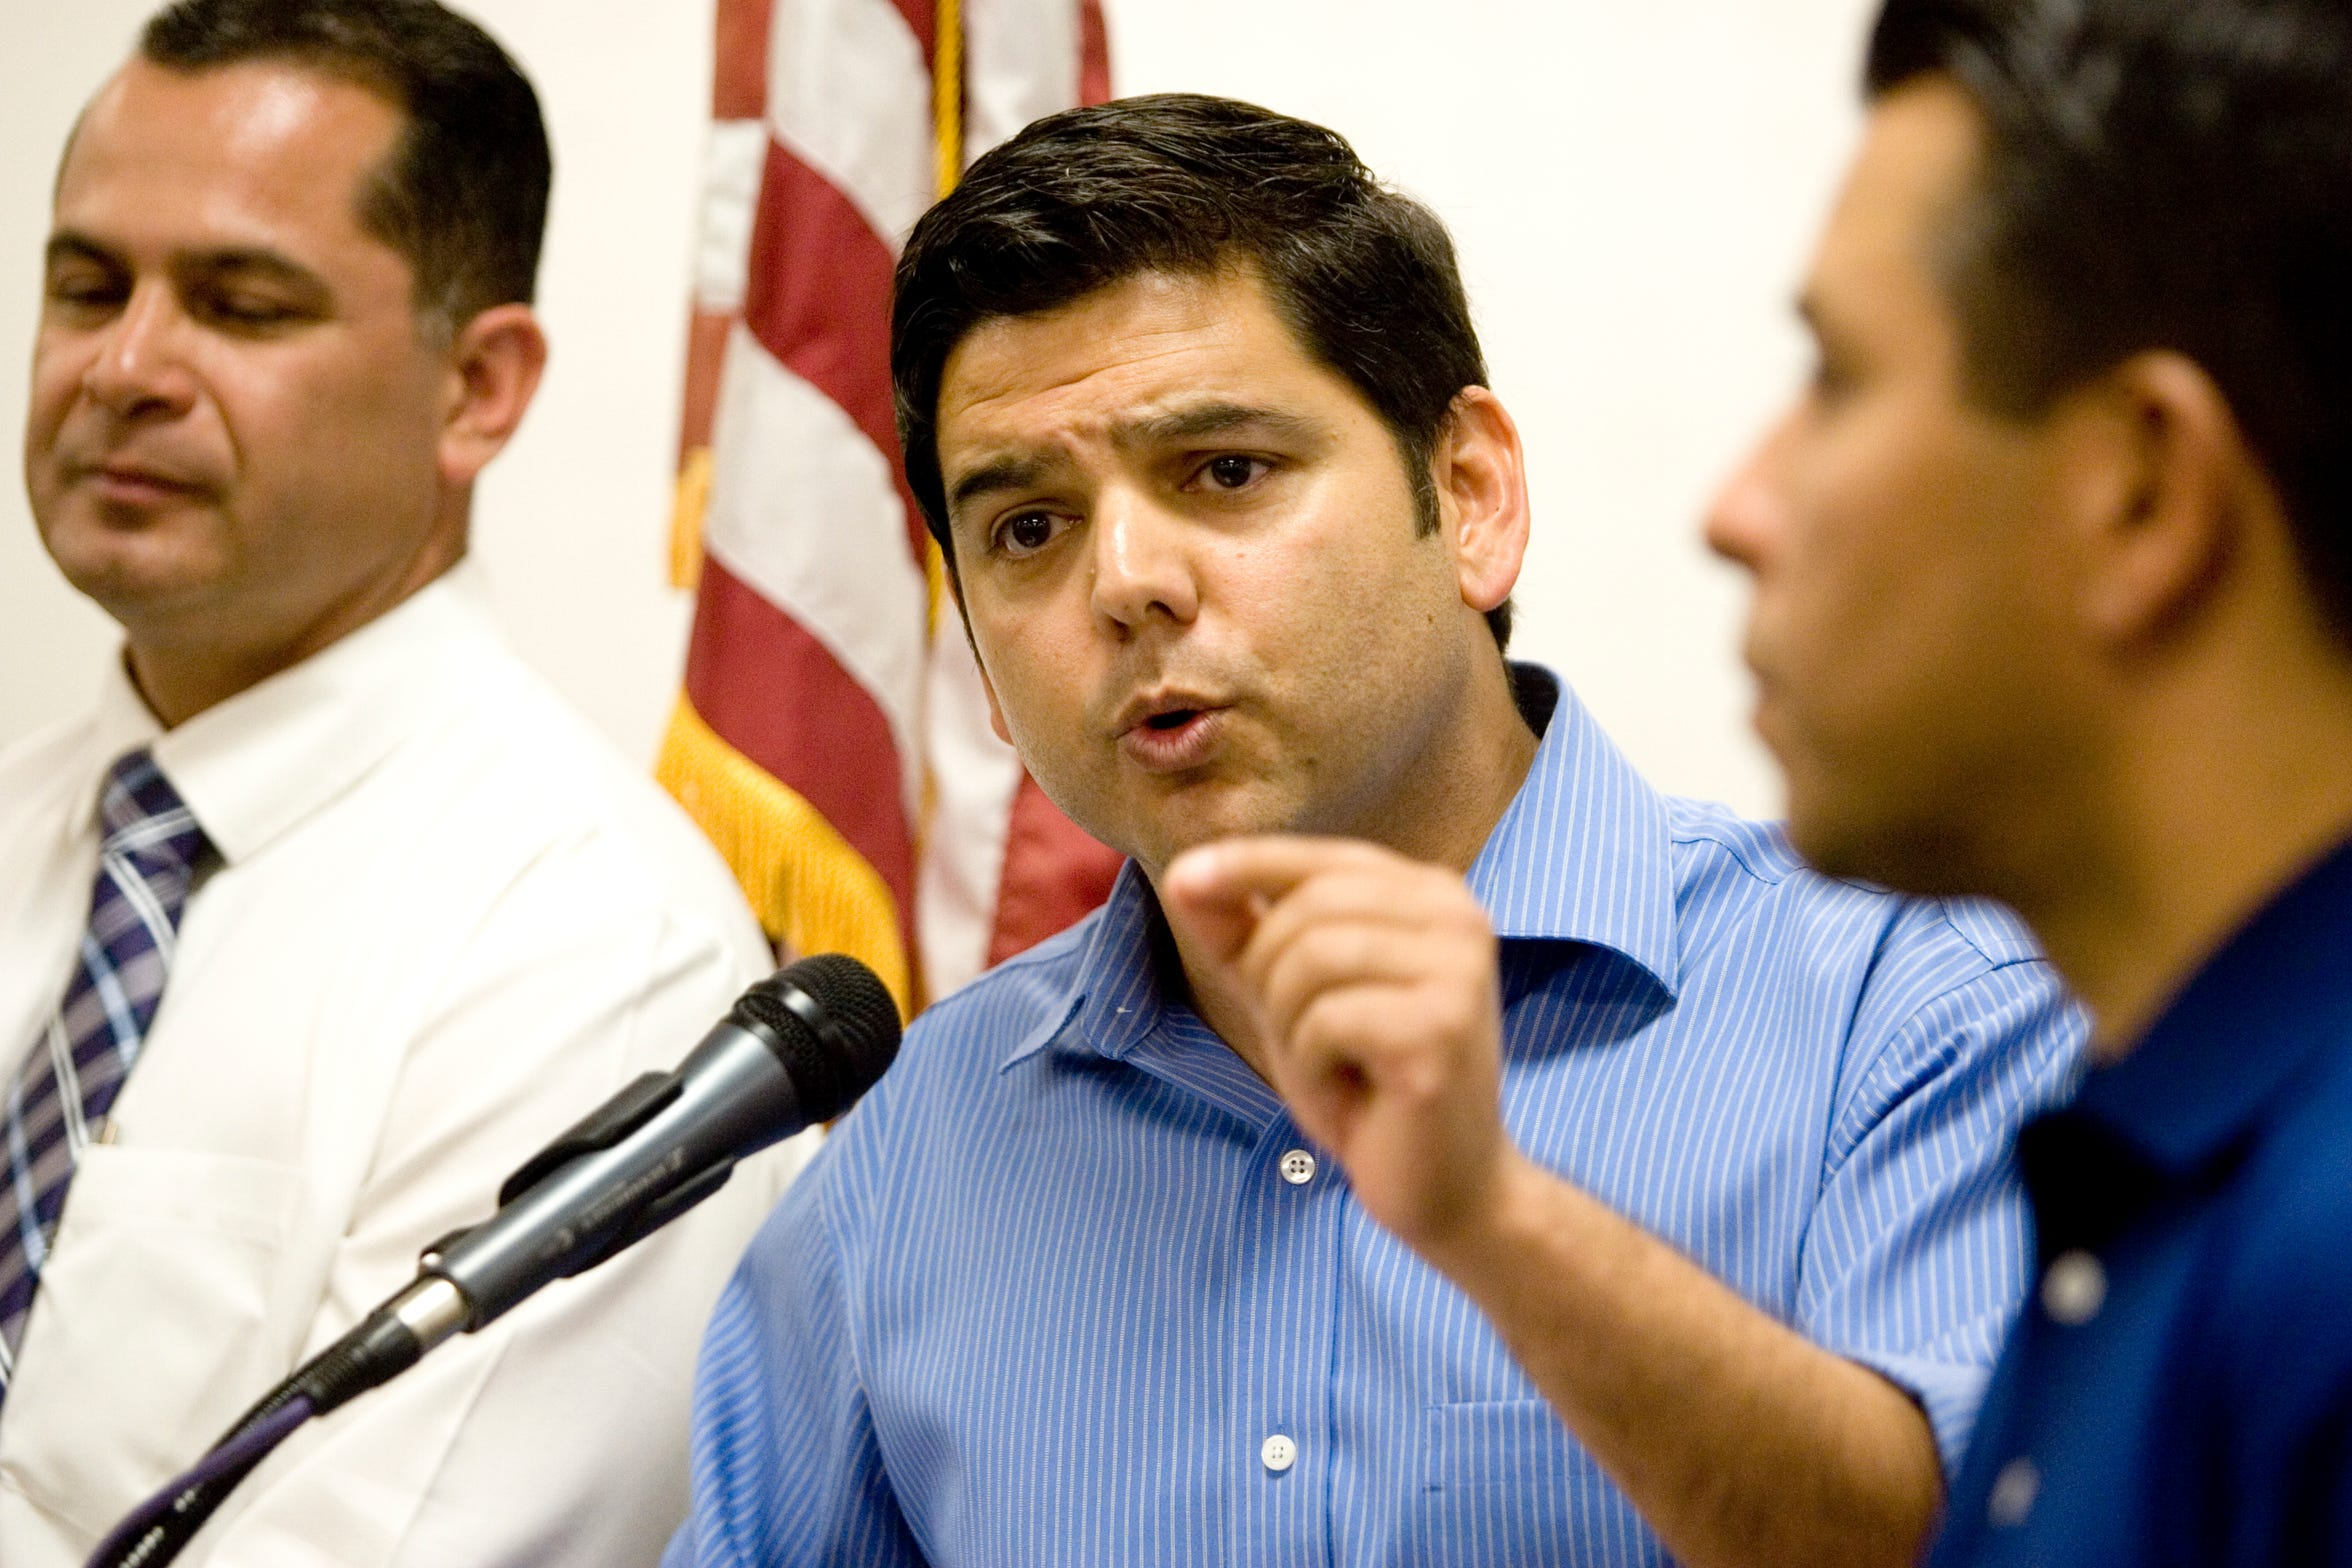 Congressman Raul Ruiz speaks at the opening of V. Manuel Perez's offices in the city of Coachella on September 25, 2012. At far left is Assemblyman V. Manuel Perez and at far right is Mayor of Coachella Eduardo Garcia.